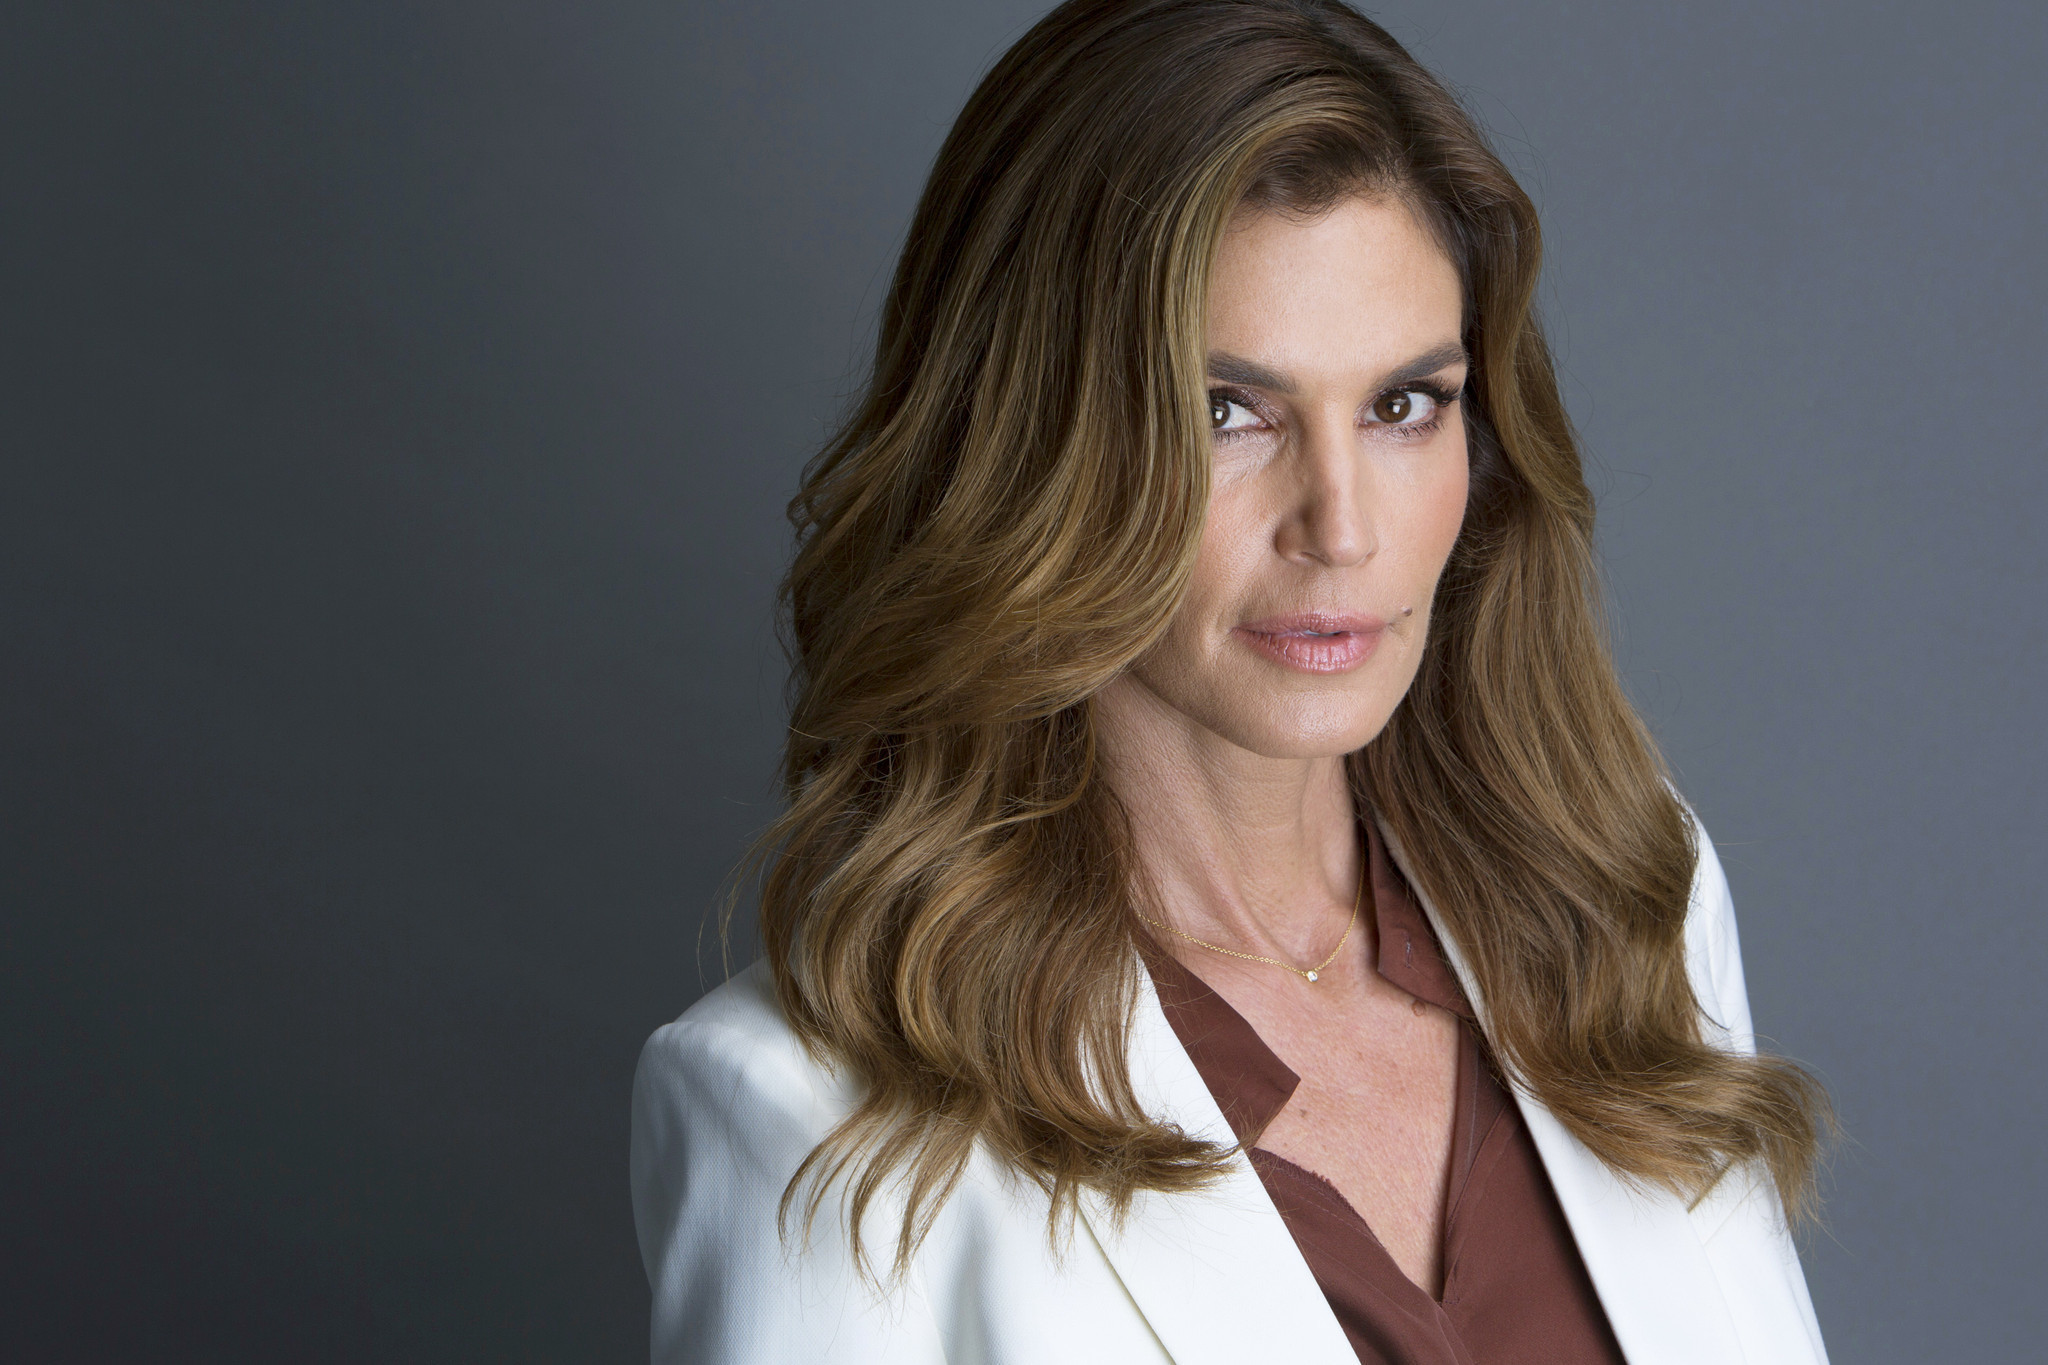 Photos Cindy Crawford nude (36 photos), Topless, Sideboobs, Instagram, swimsuit 2017